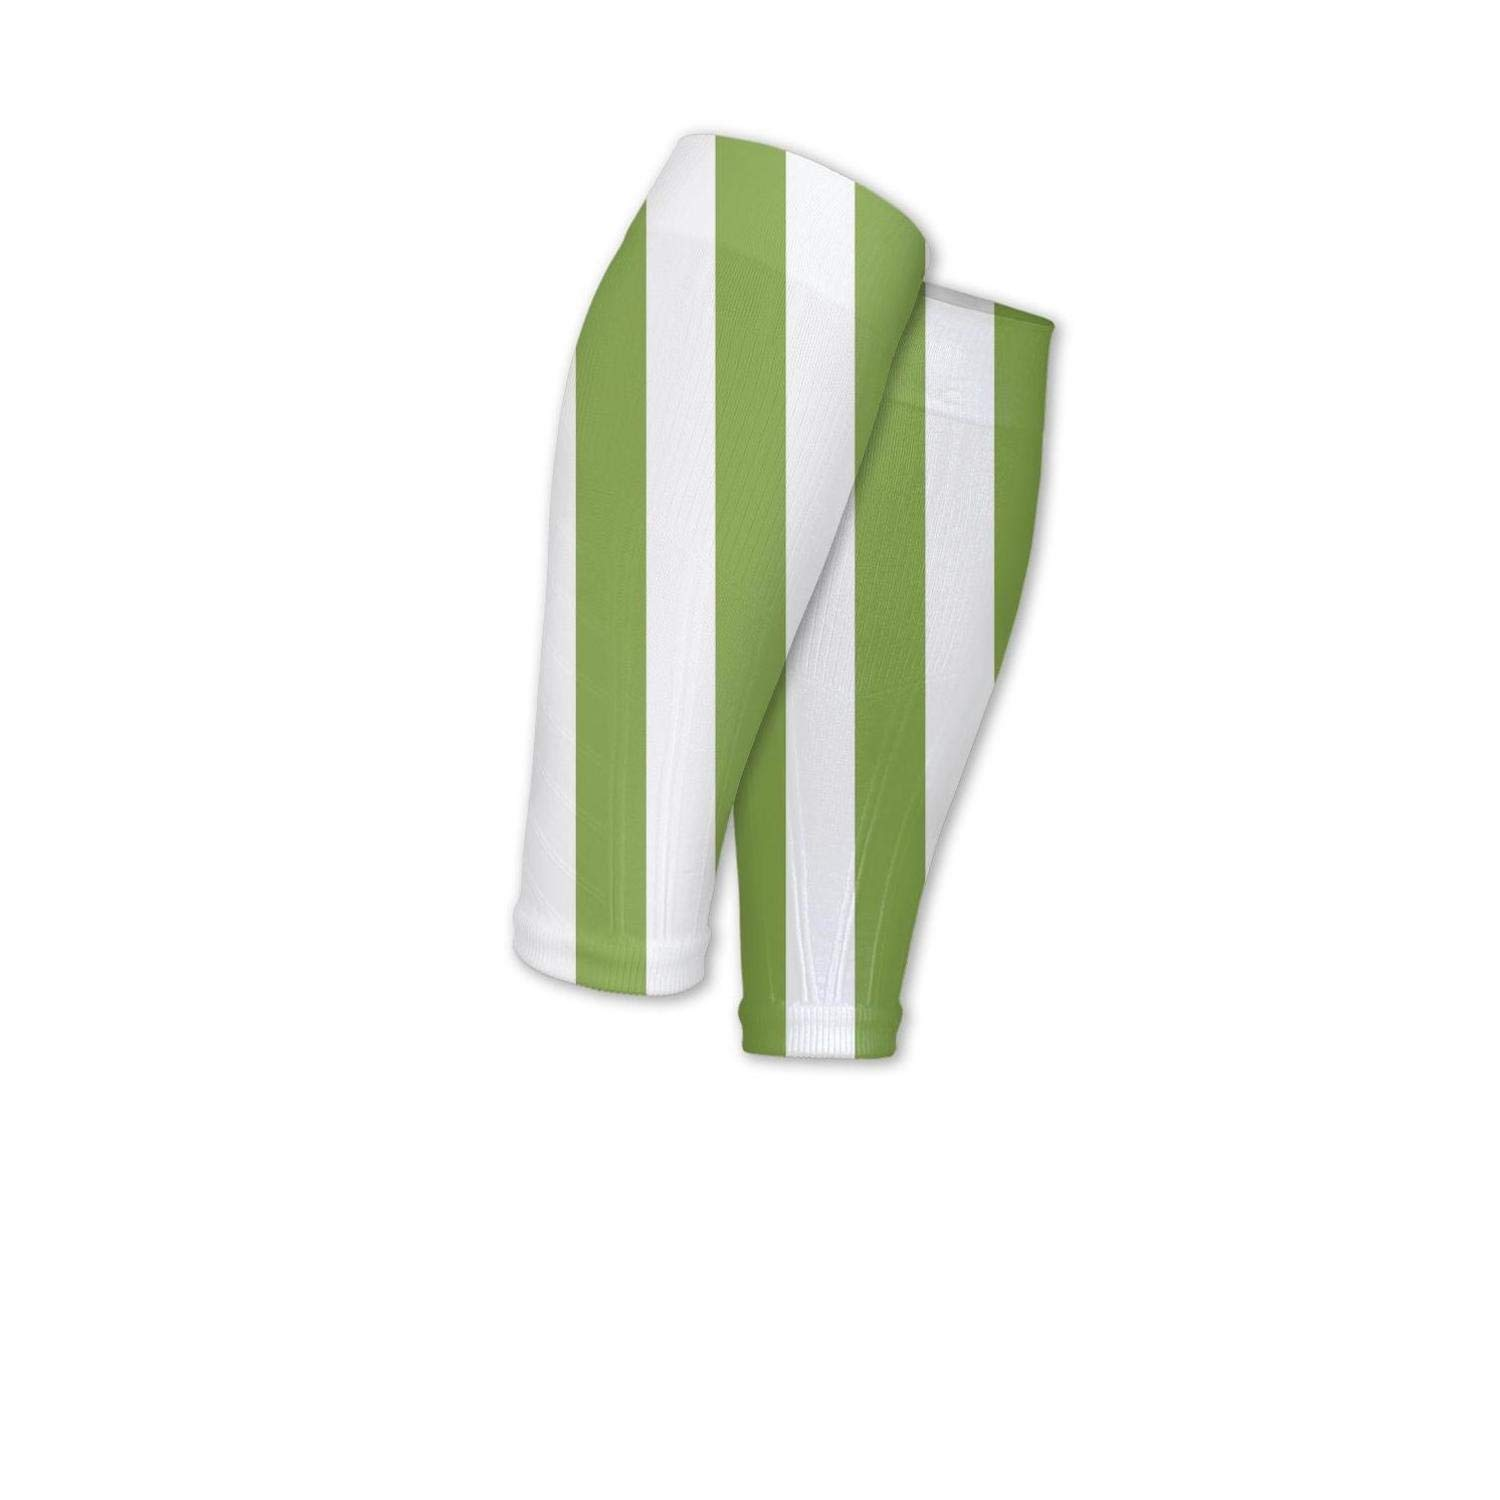 Smilelolly green-and-white-striped Calf Compression Sleeves Helps Pain Relief Leg Sleeves for Men Women